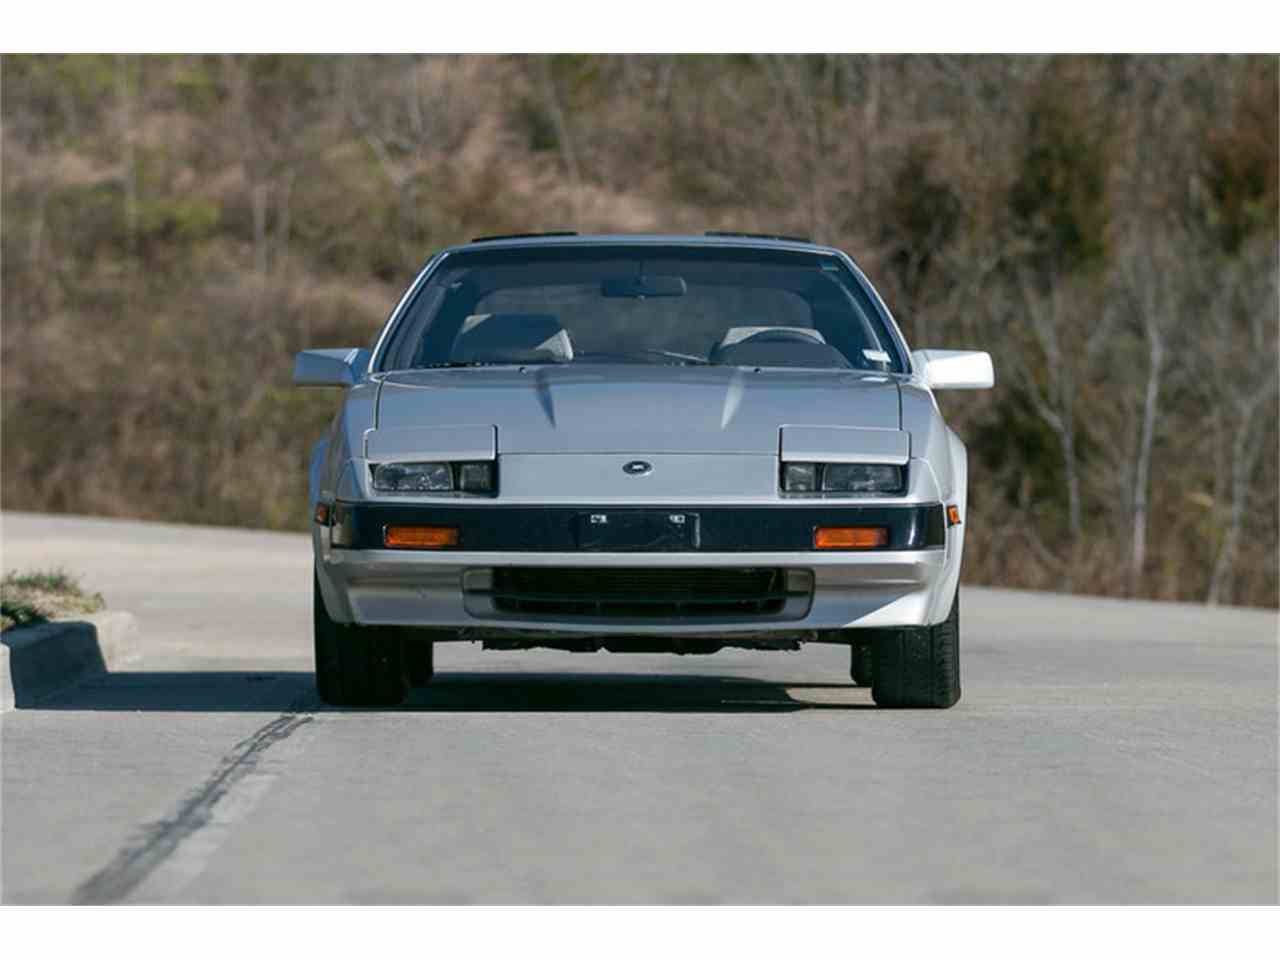 Large Picture of 1985 Nissan 300ZX located in St. Charles Missouri - $7,995.00 - KQ4P